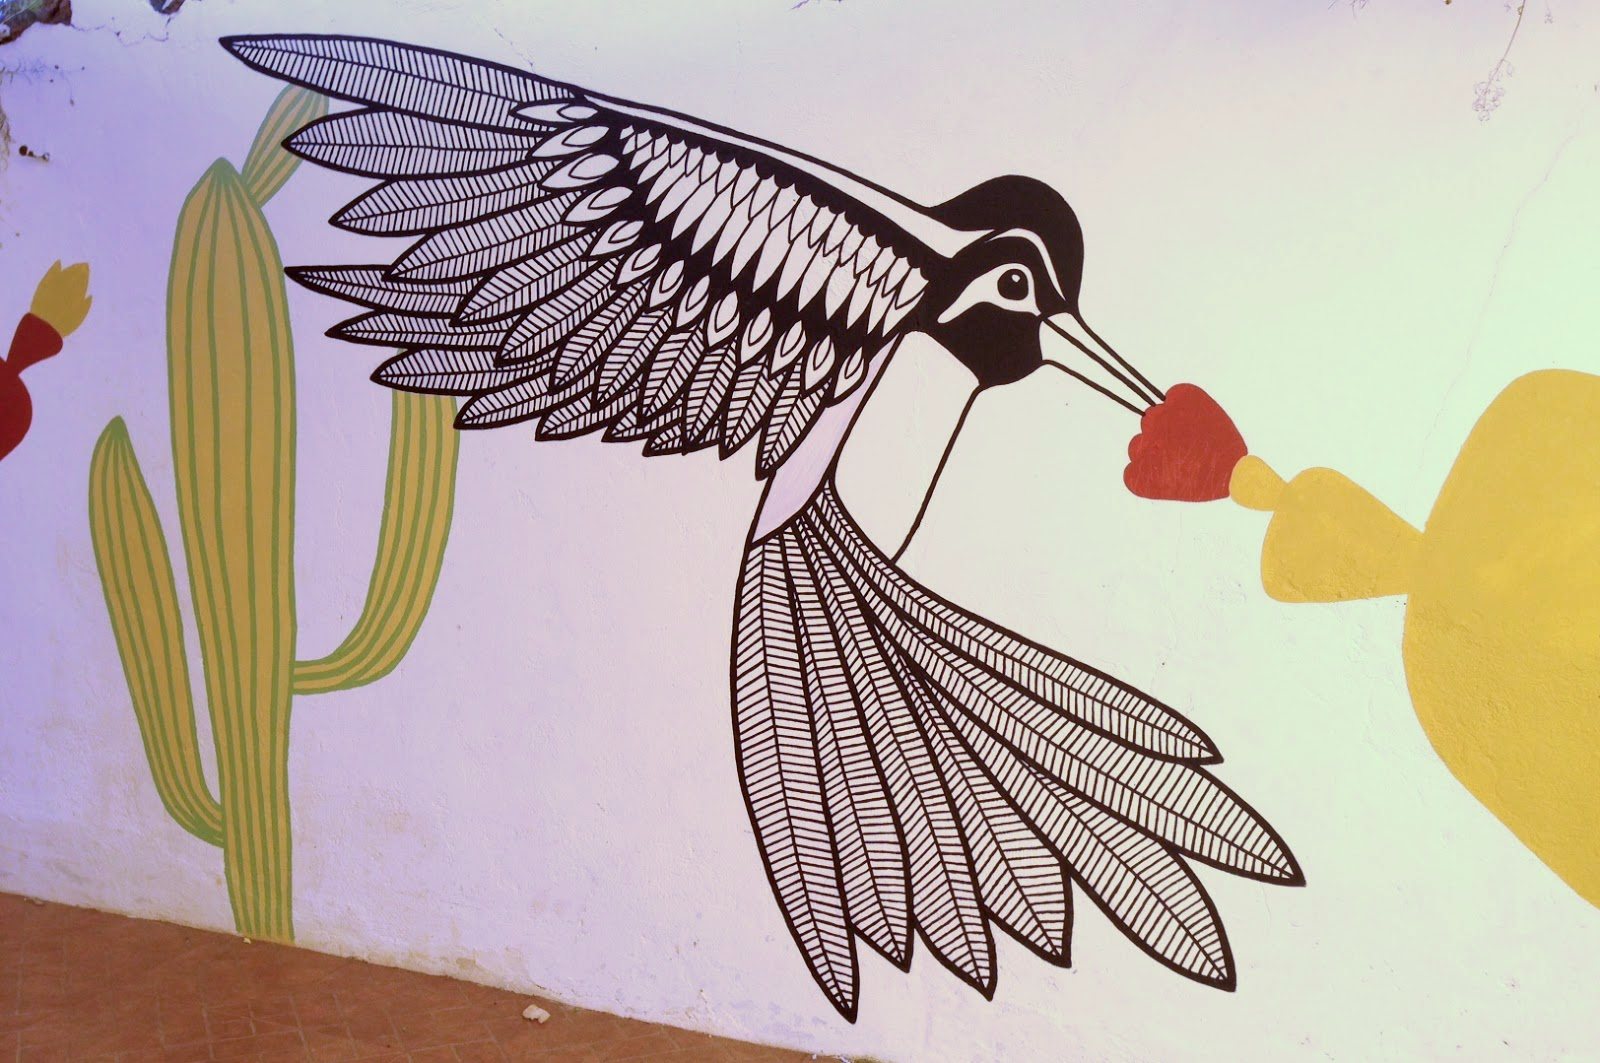 Hummingbird Mural, Portugal